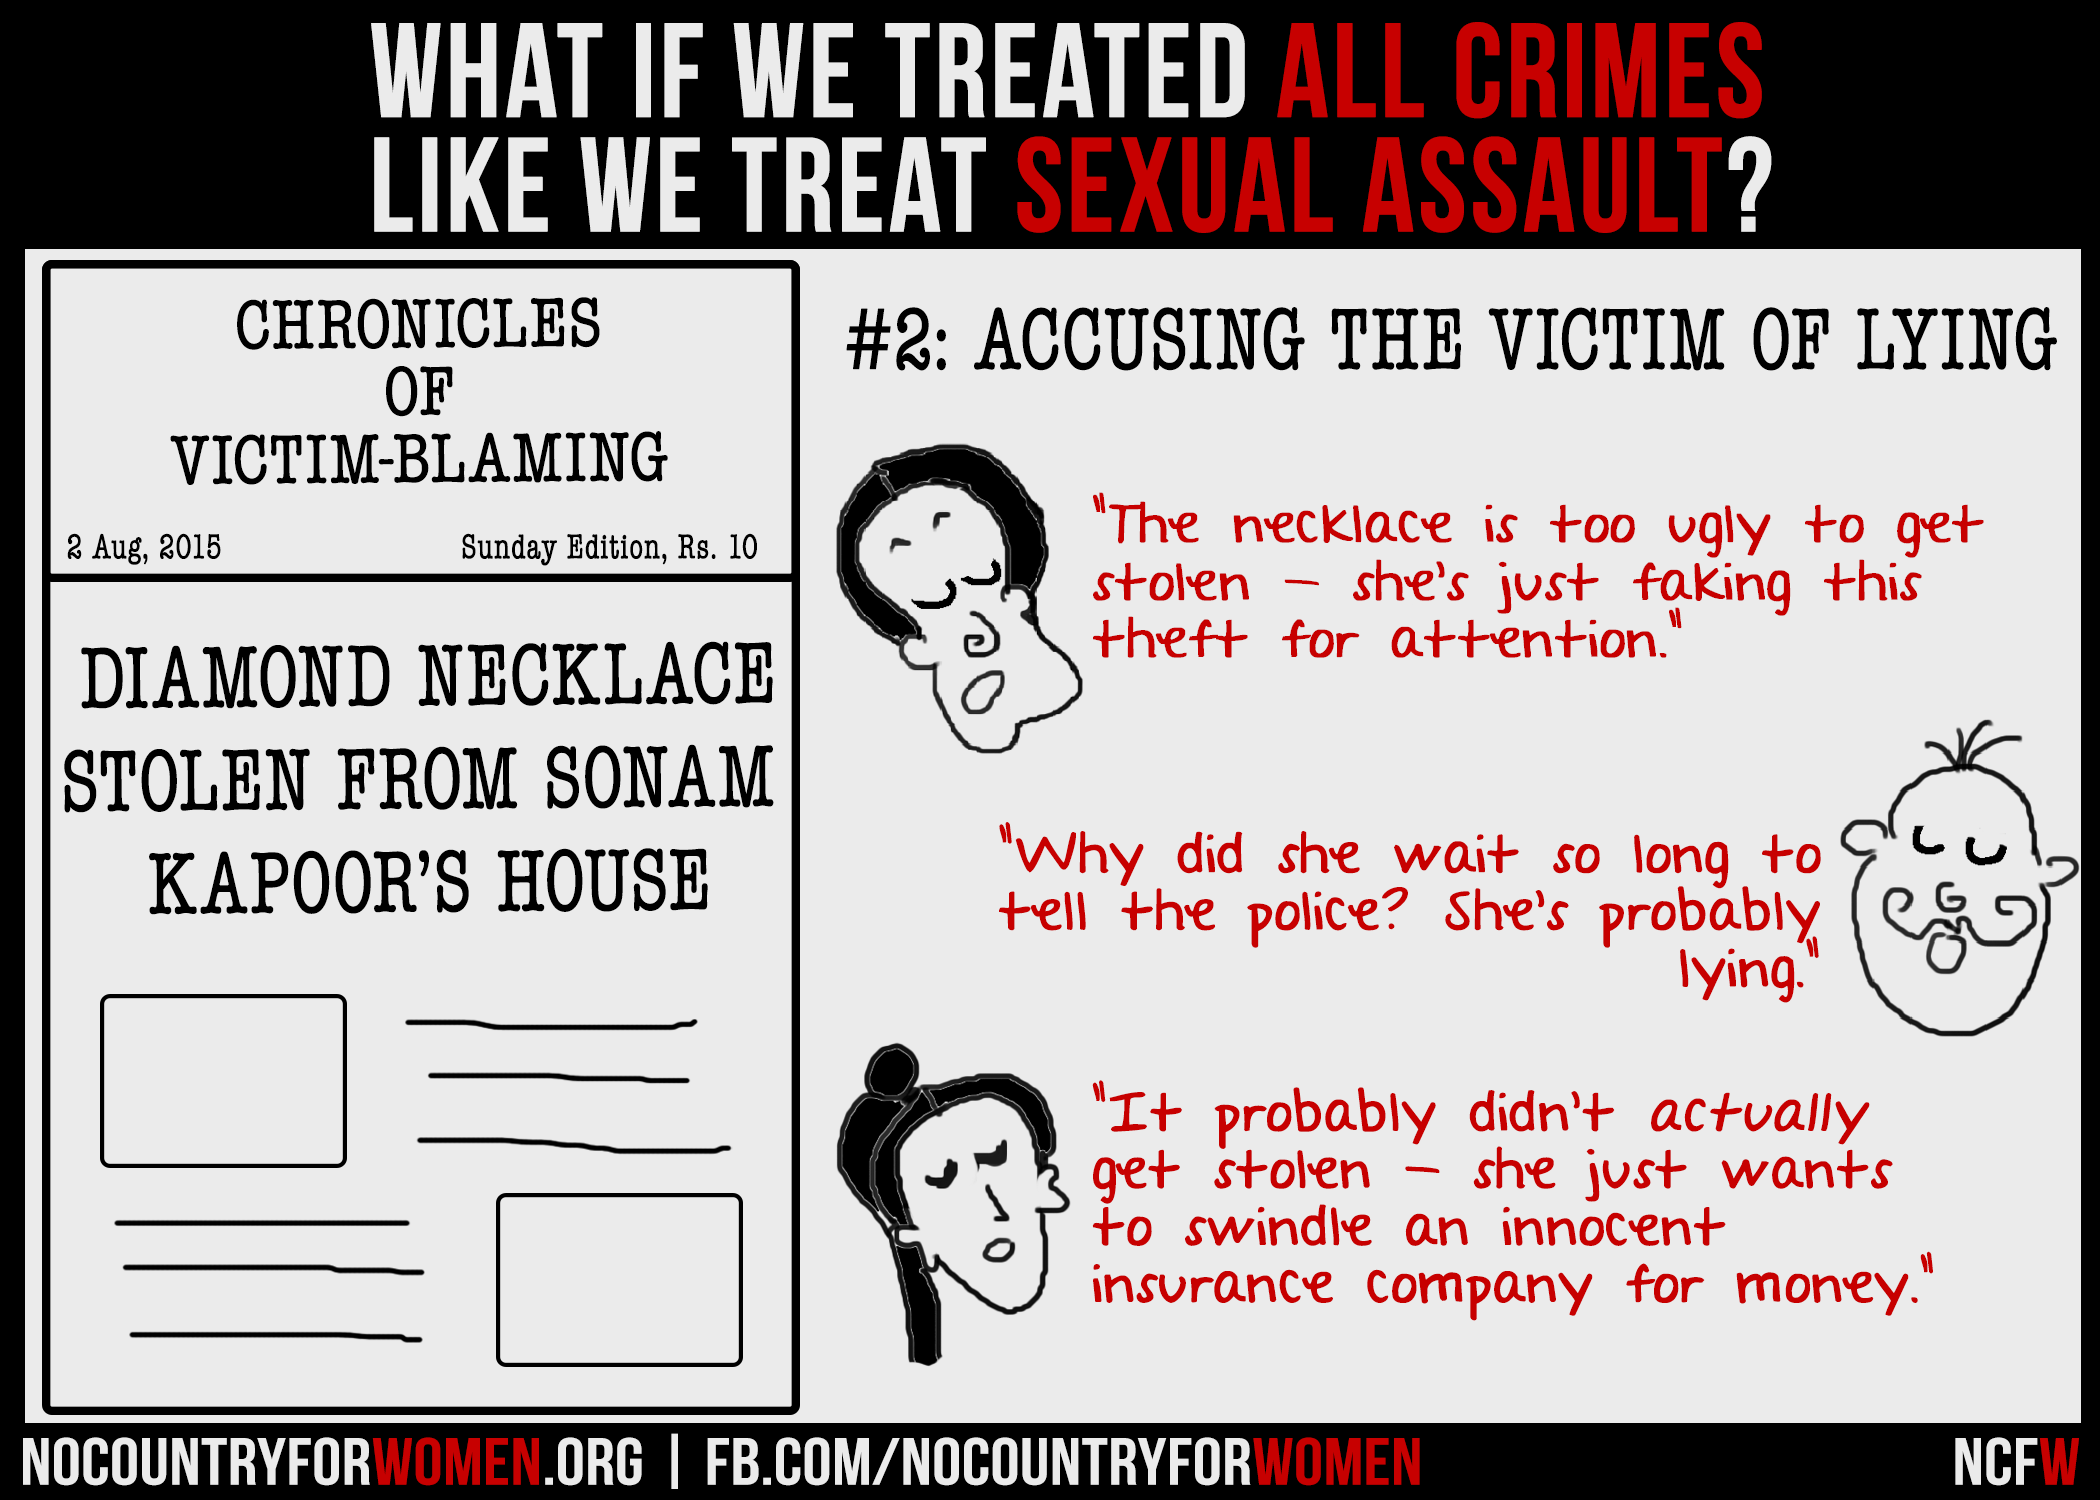 Instead Of Just Blaming Victims For >> These Posters Show How Ridiculous It Is To Blame Victims For Sexual